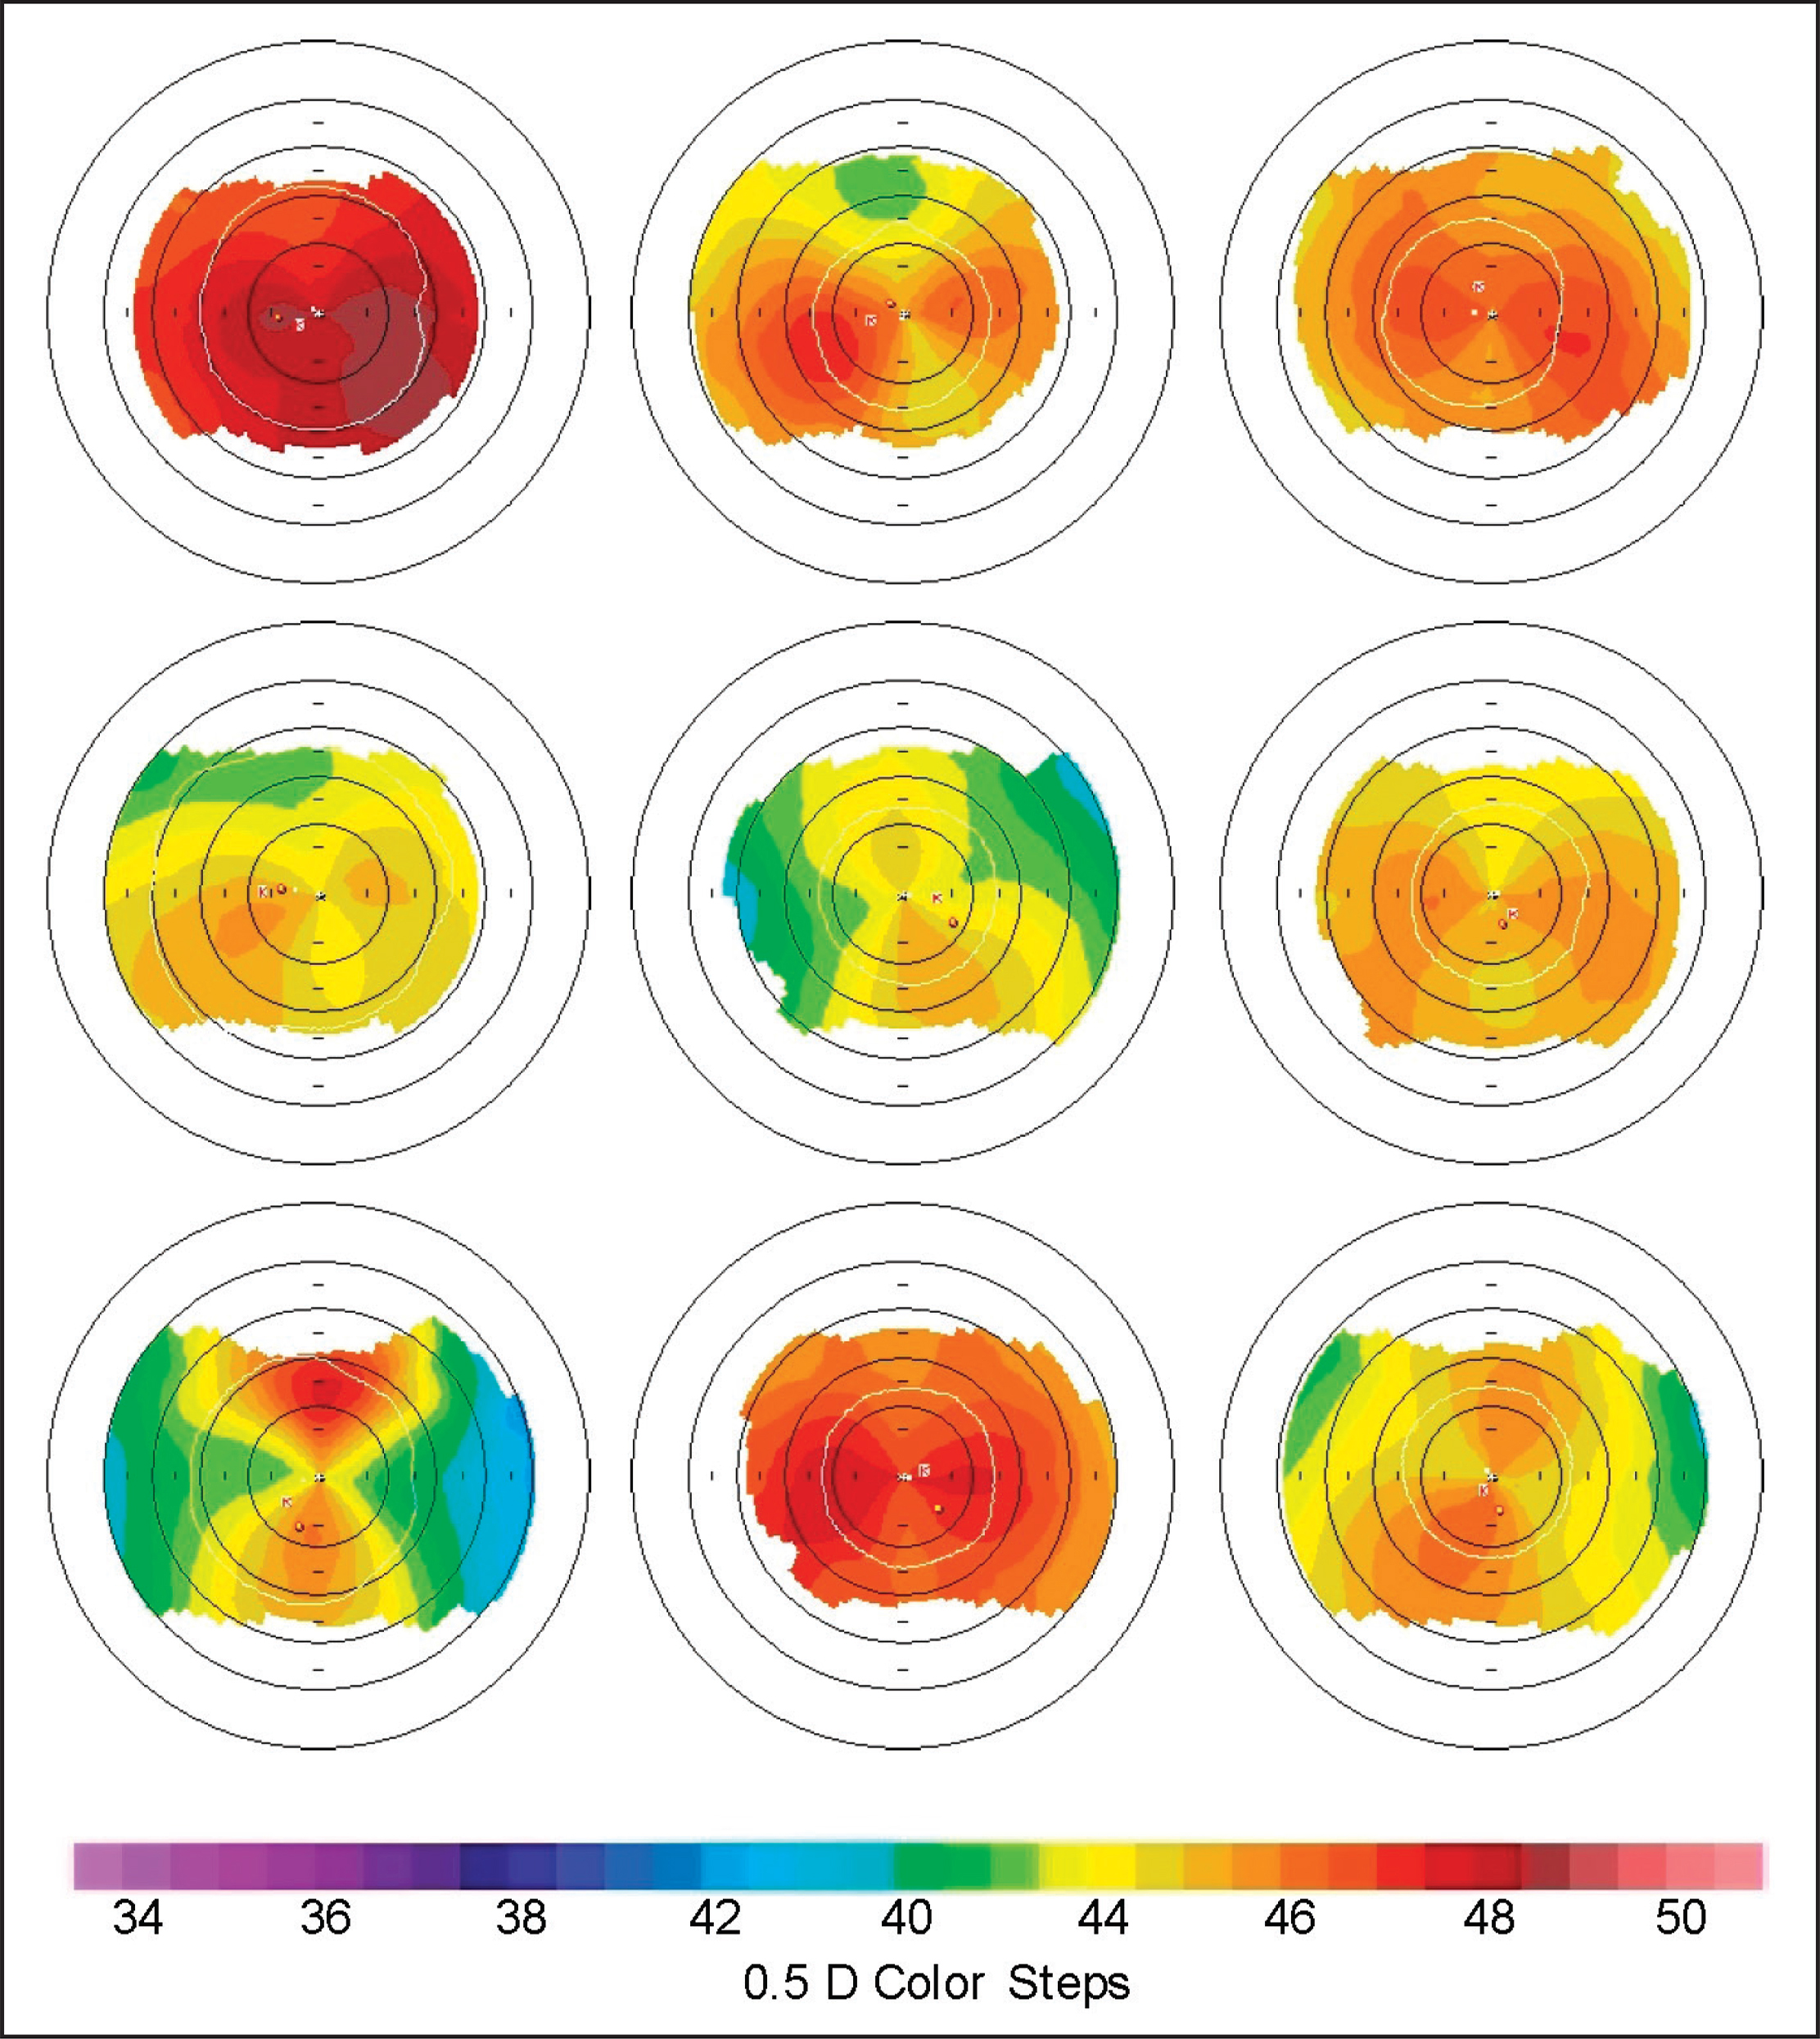 Keratometric maps showing a sampling of eyes with skewed radial axes, non-orthogonal cylinder, and inferior/superior steepening, representing naturally occurring irregular astigmatism.